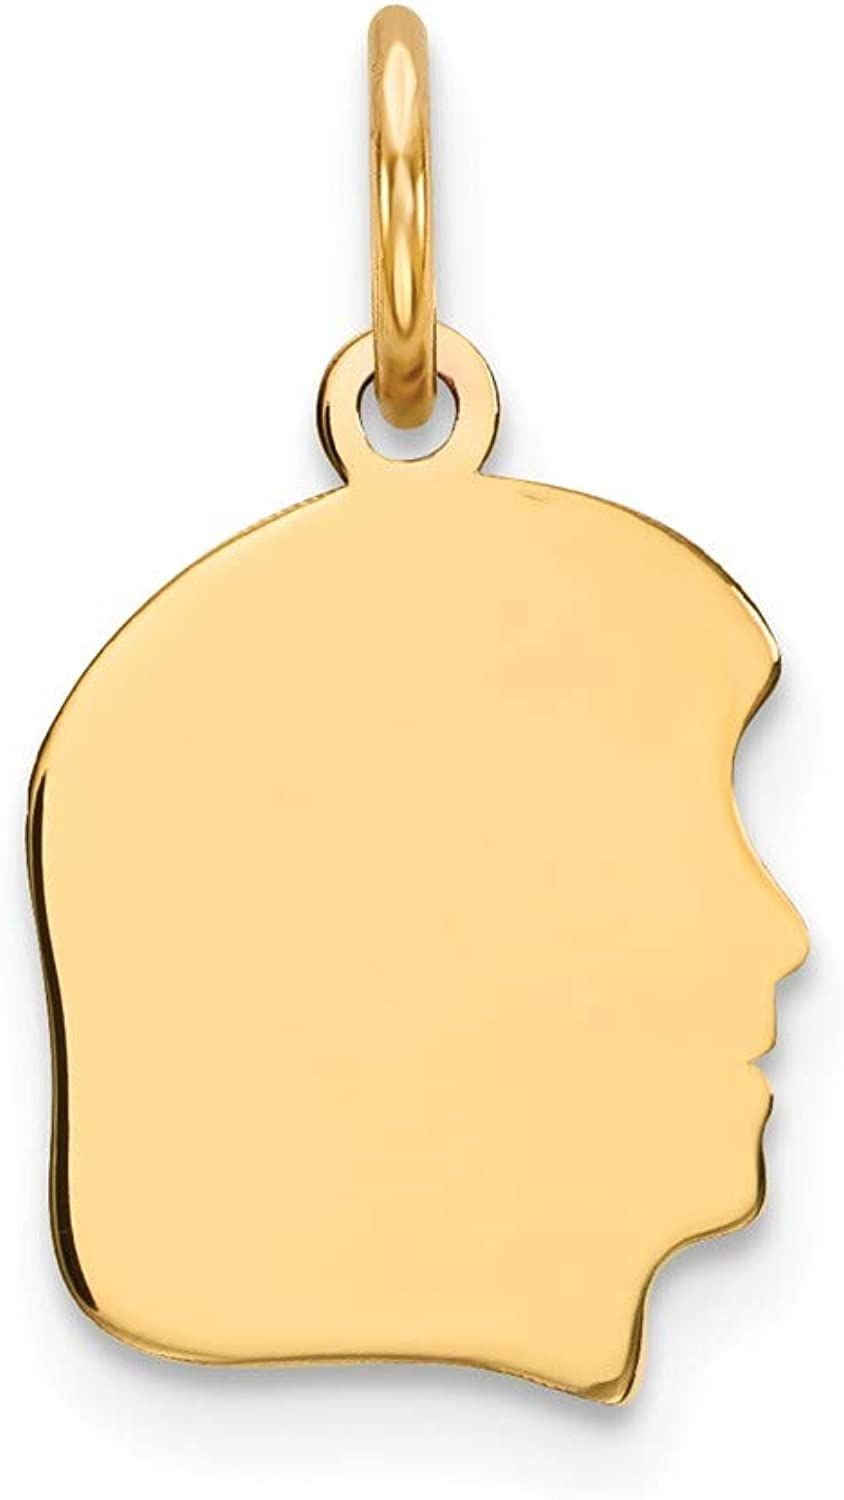 Beautiful Yellow gold 14K Yellowgold 14k Plain Small .009 Gauge Facing Right Engravable Girl Head Charm